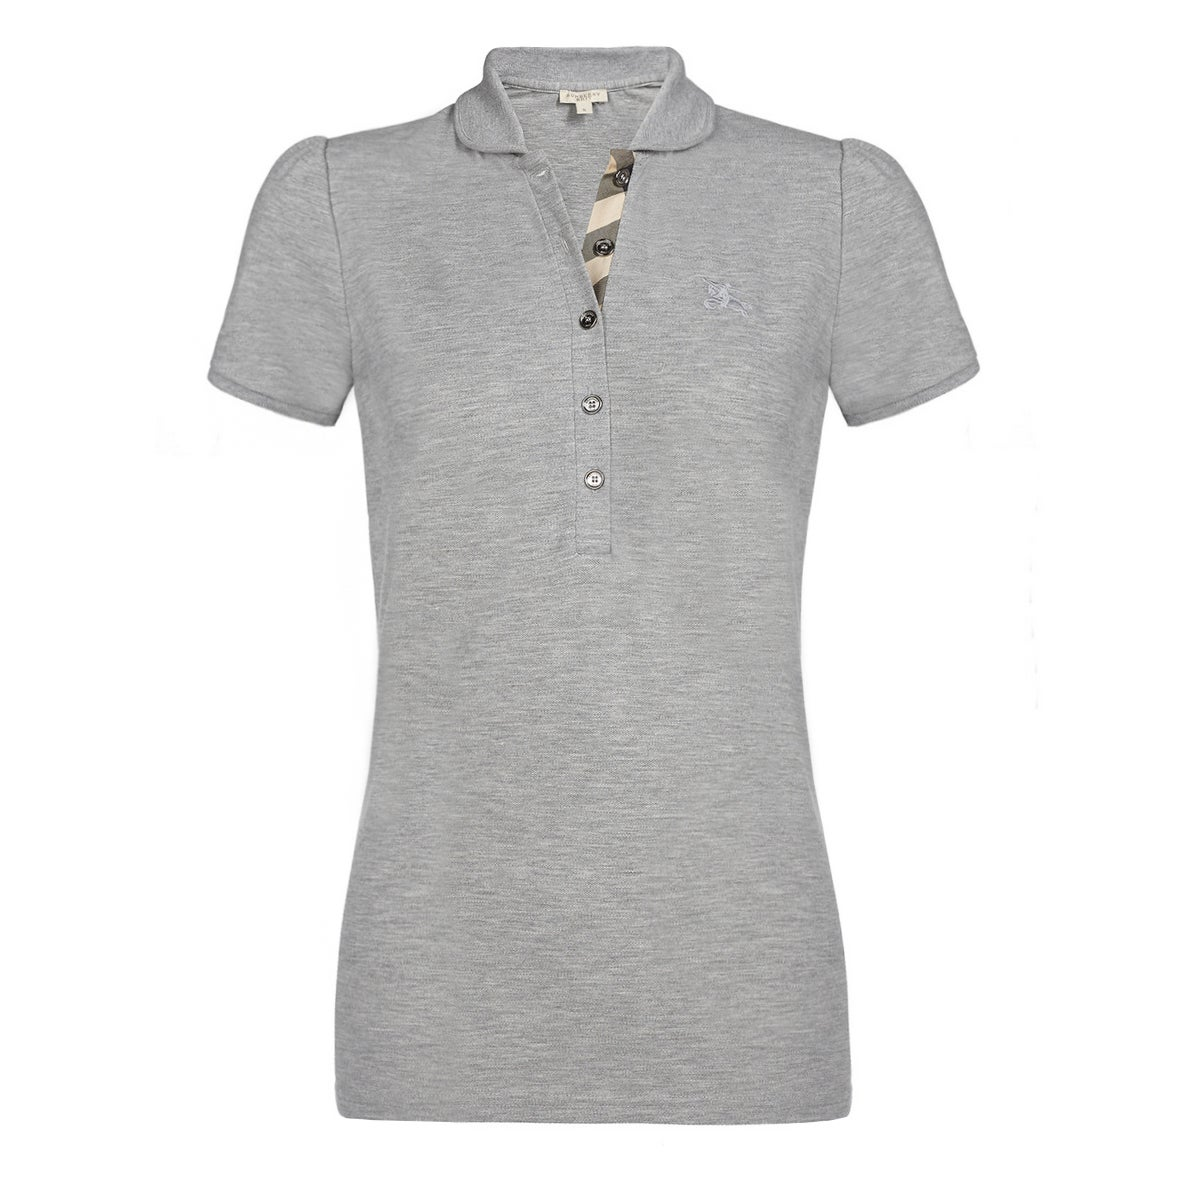 3cdc83f9 Shop Burberry Women's Grey Cotton Melange Polo Shirt - Free Shipping Today  - Overstock - 15274135